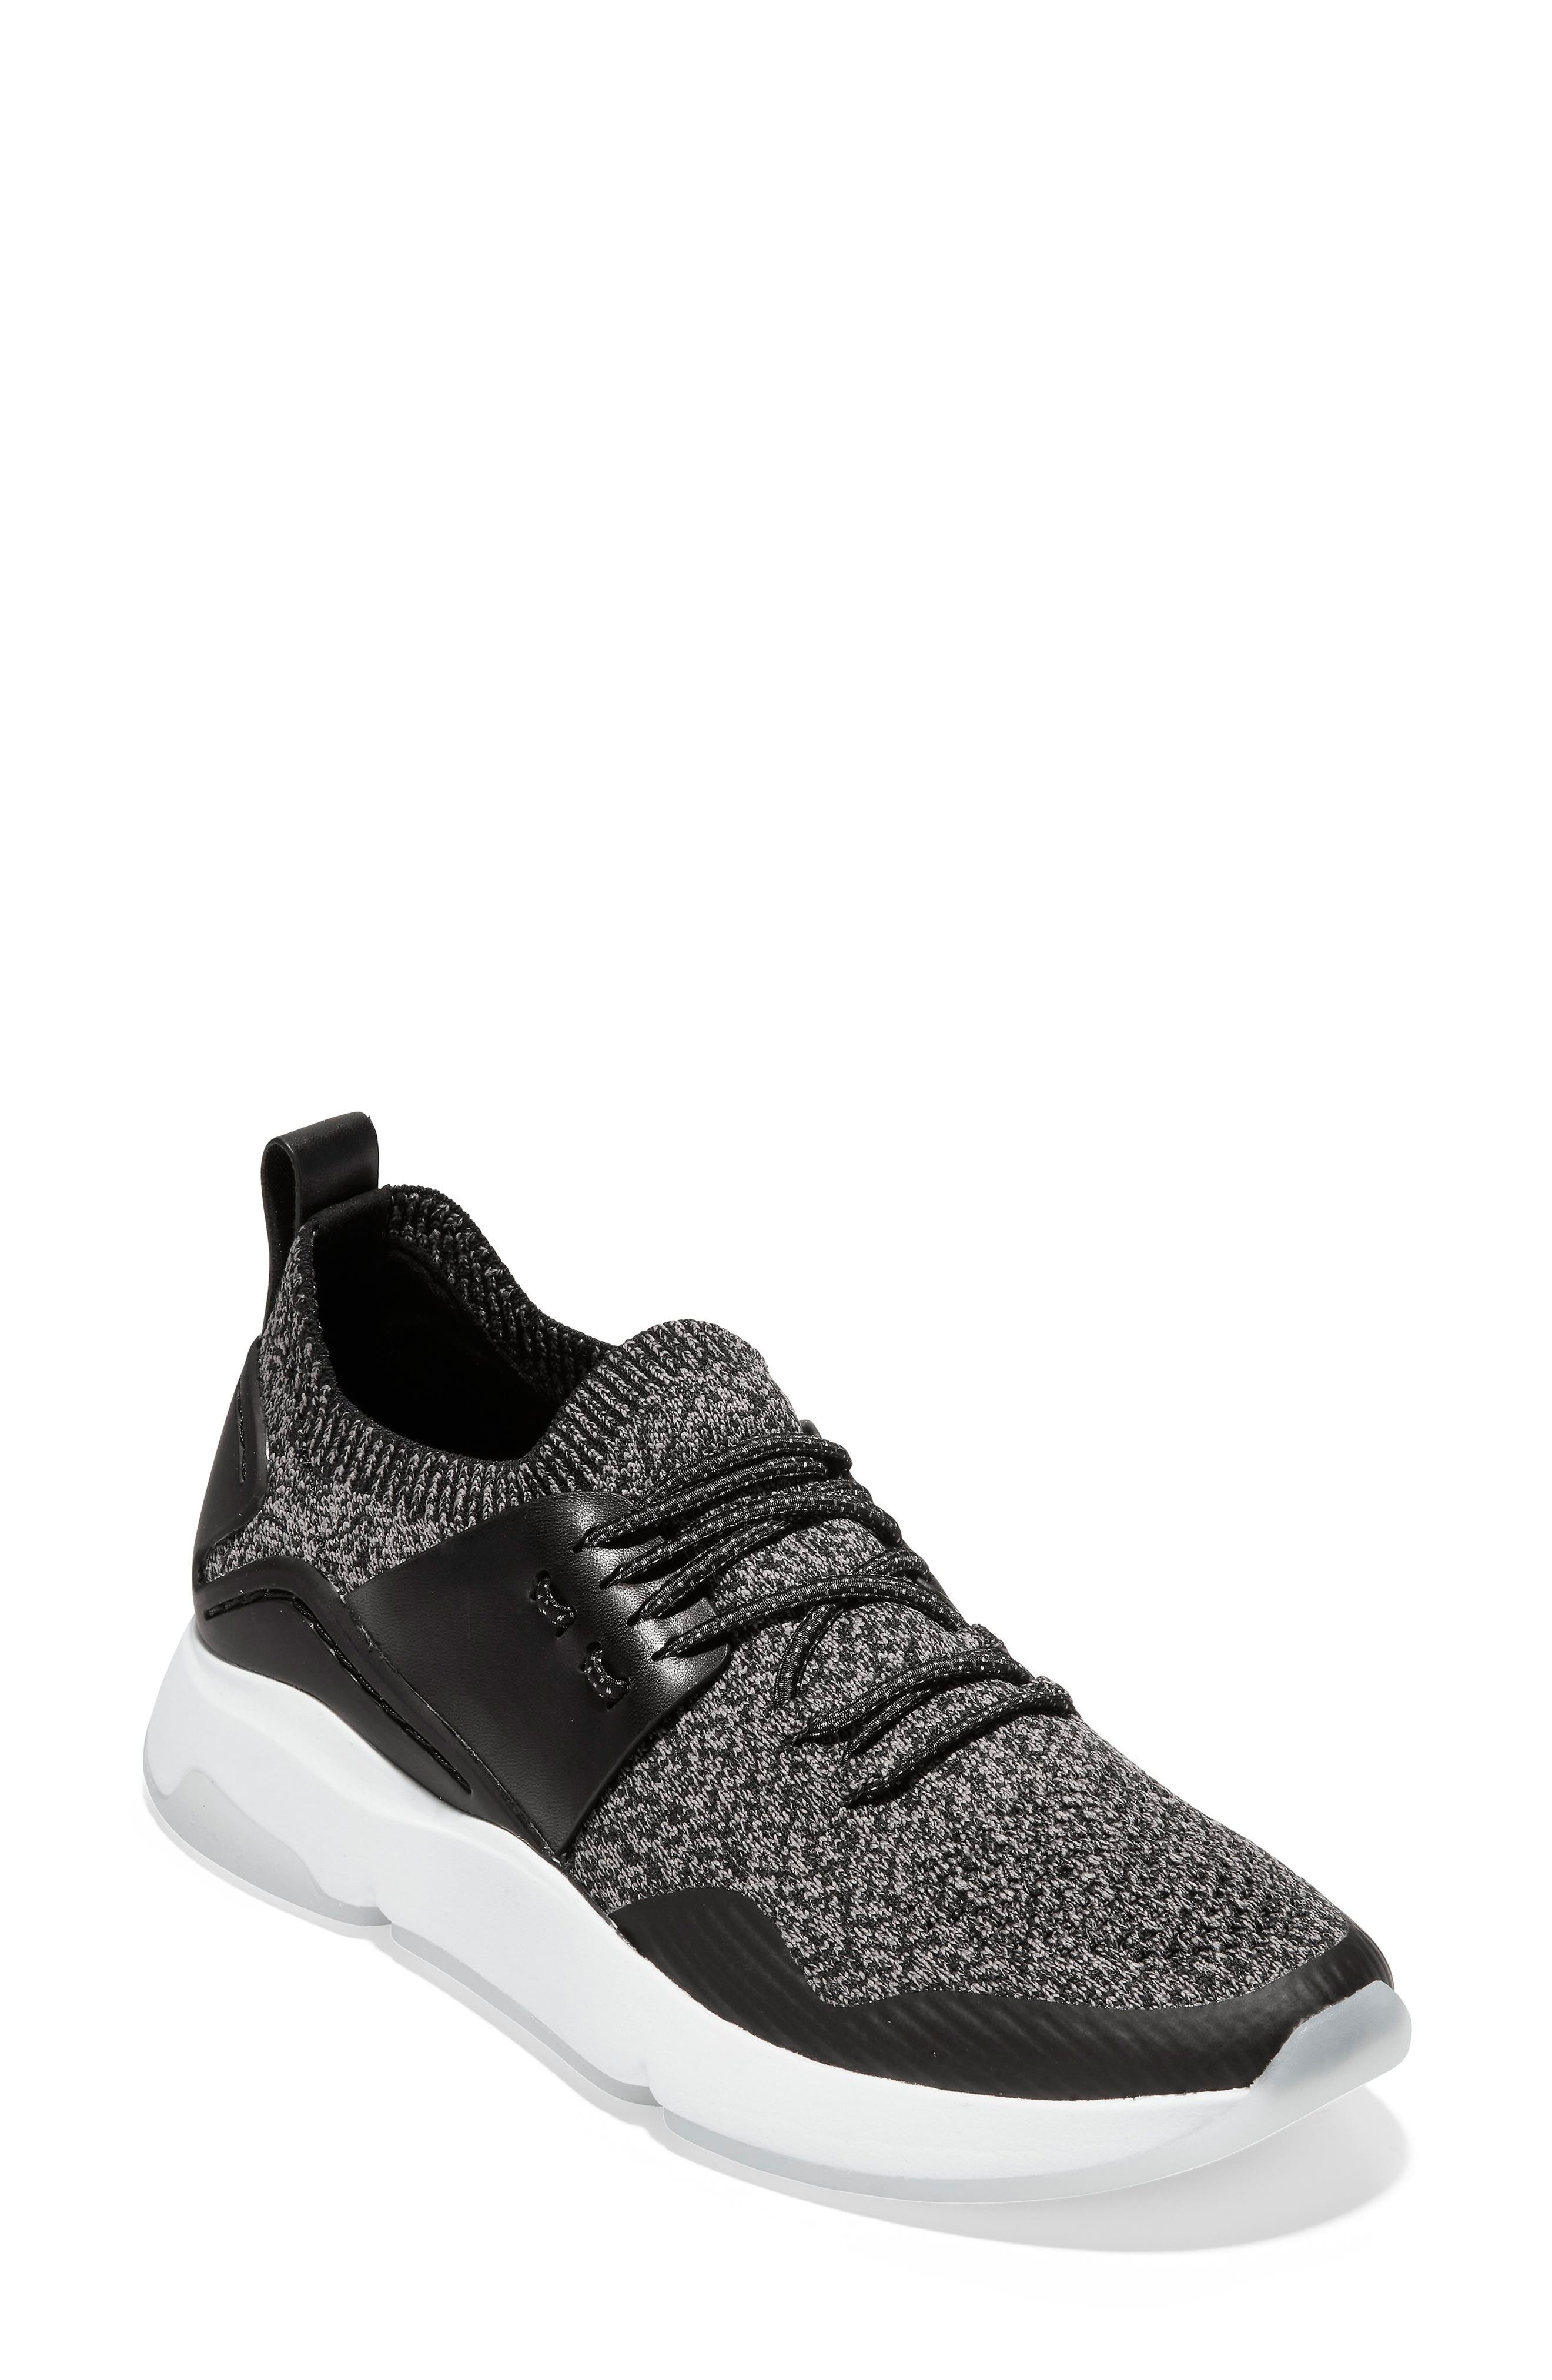 COLE HAAN ZeroGrand All Day Trainer Sneaker, Main, color, BLACK LEATHER